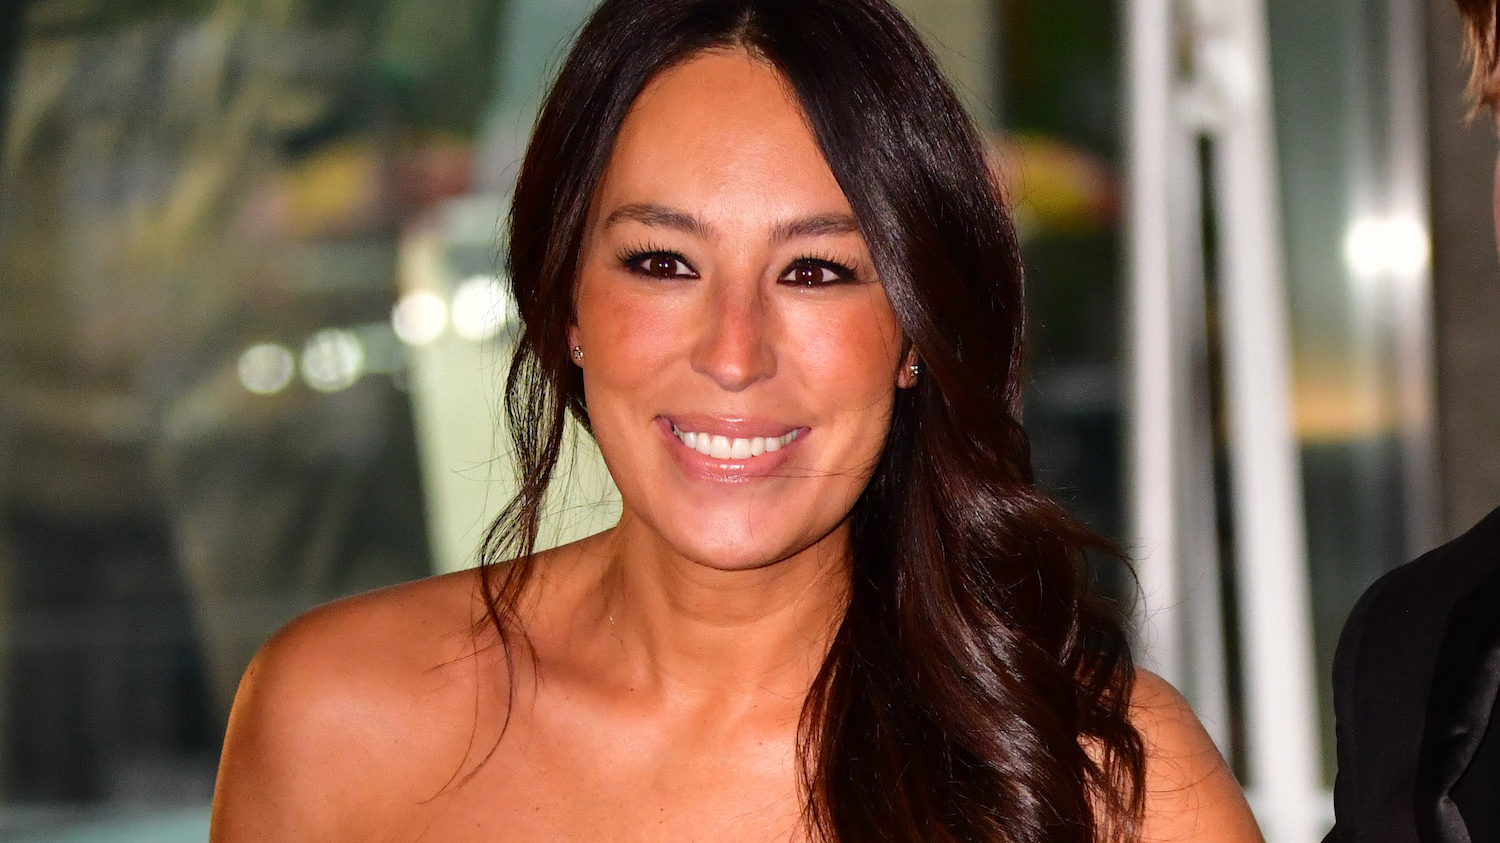 Joanna Gaines Makeup 10 Products She Swears By